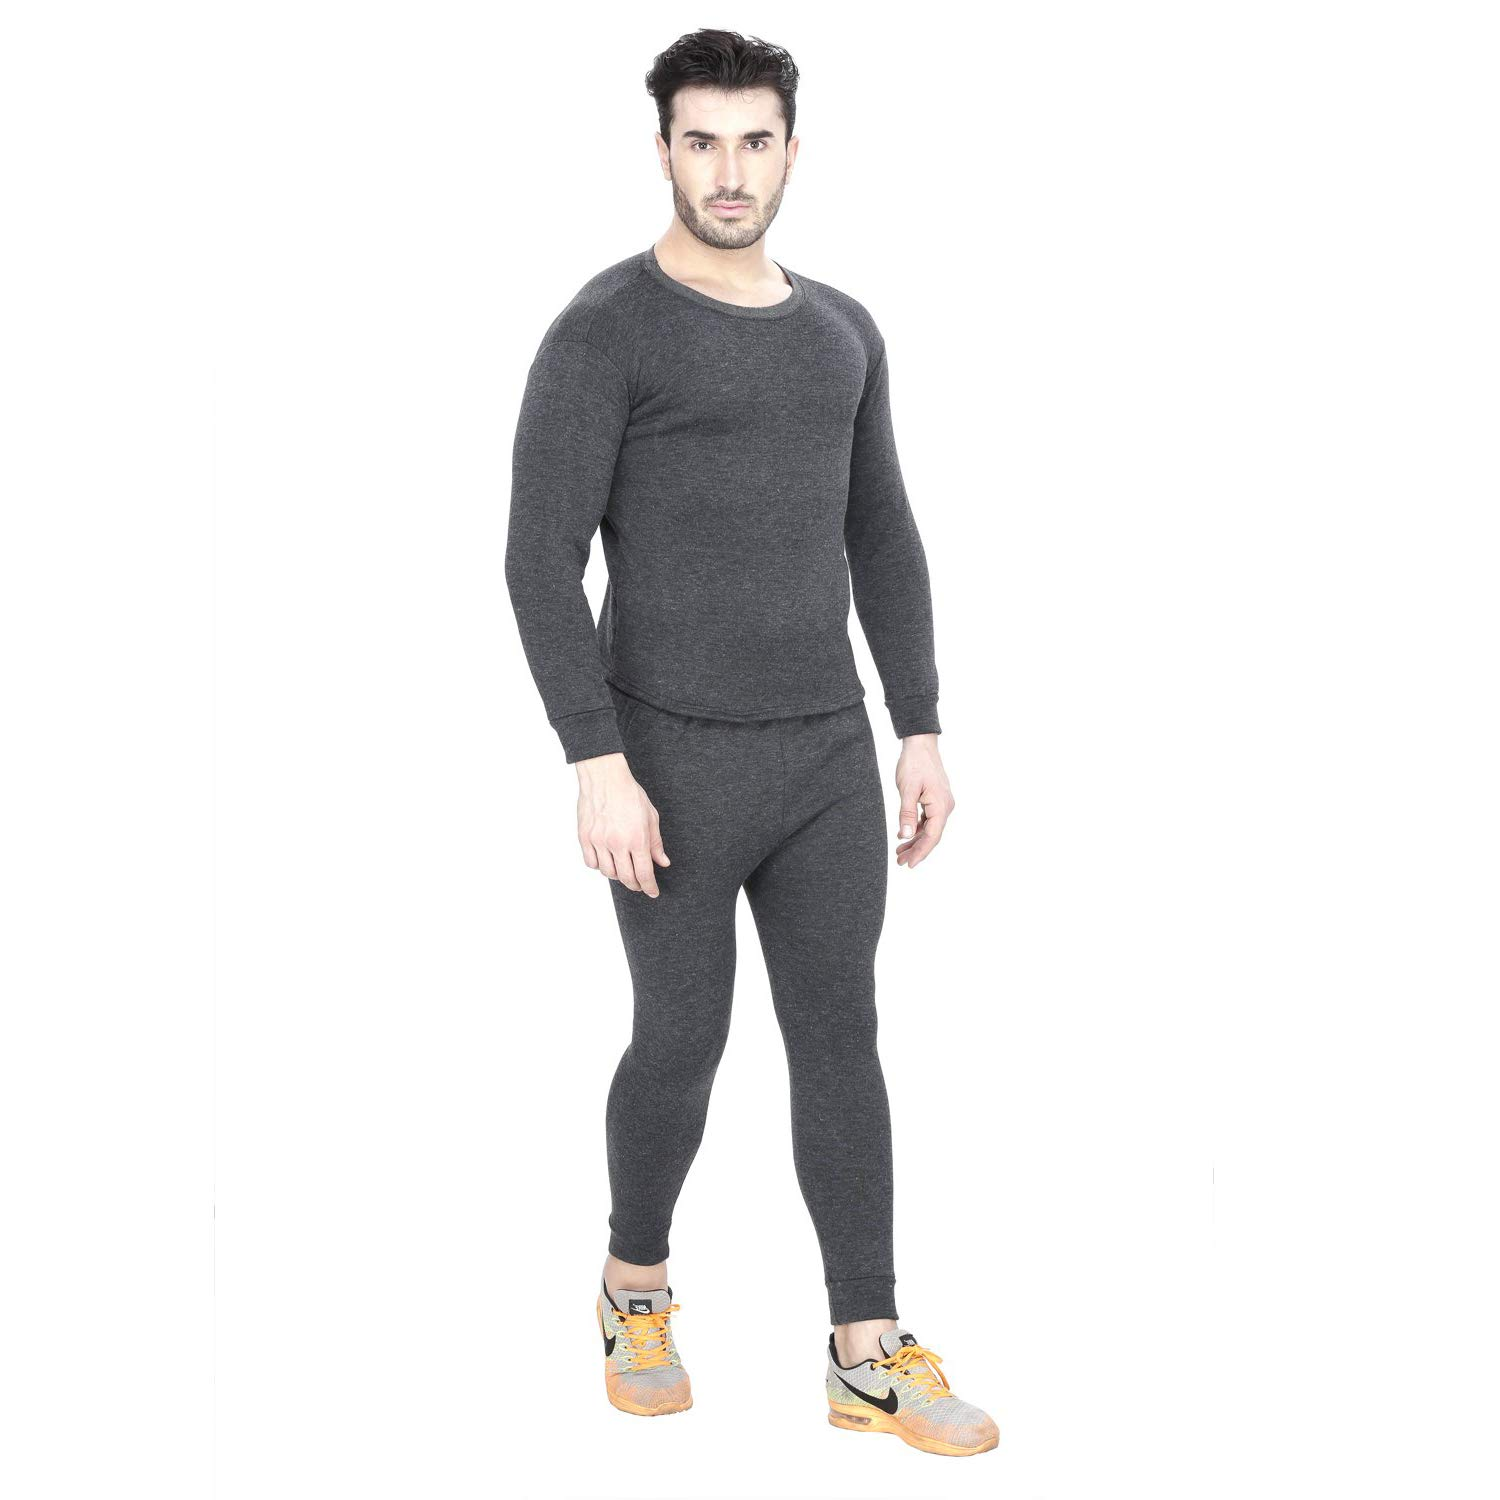 How_Stylish_Are_The_Thermal_Wear_For_Men_And_Women